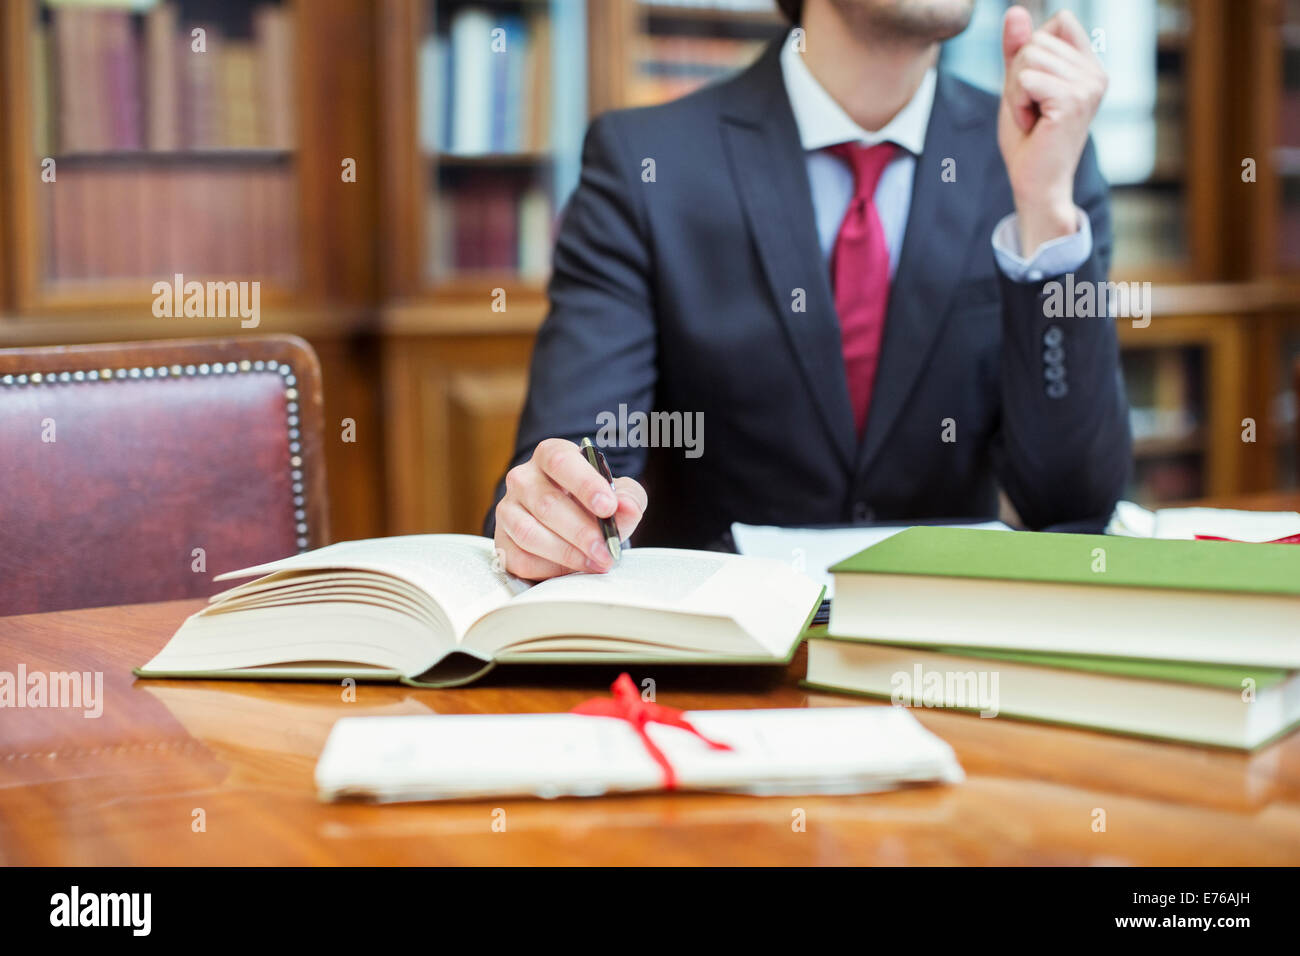 Lawyer doing research in chambers - Stock Image